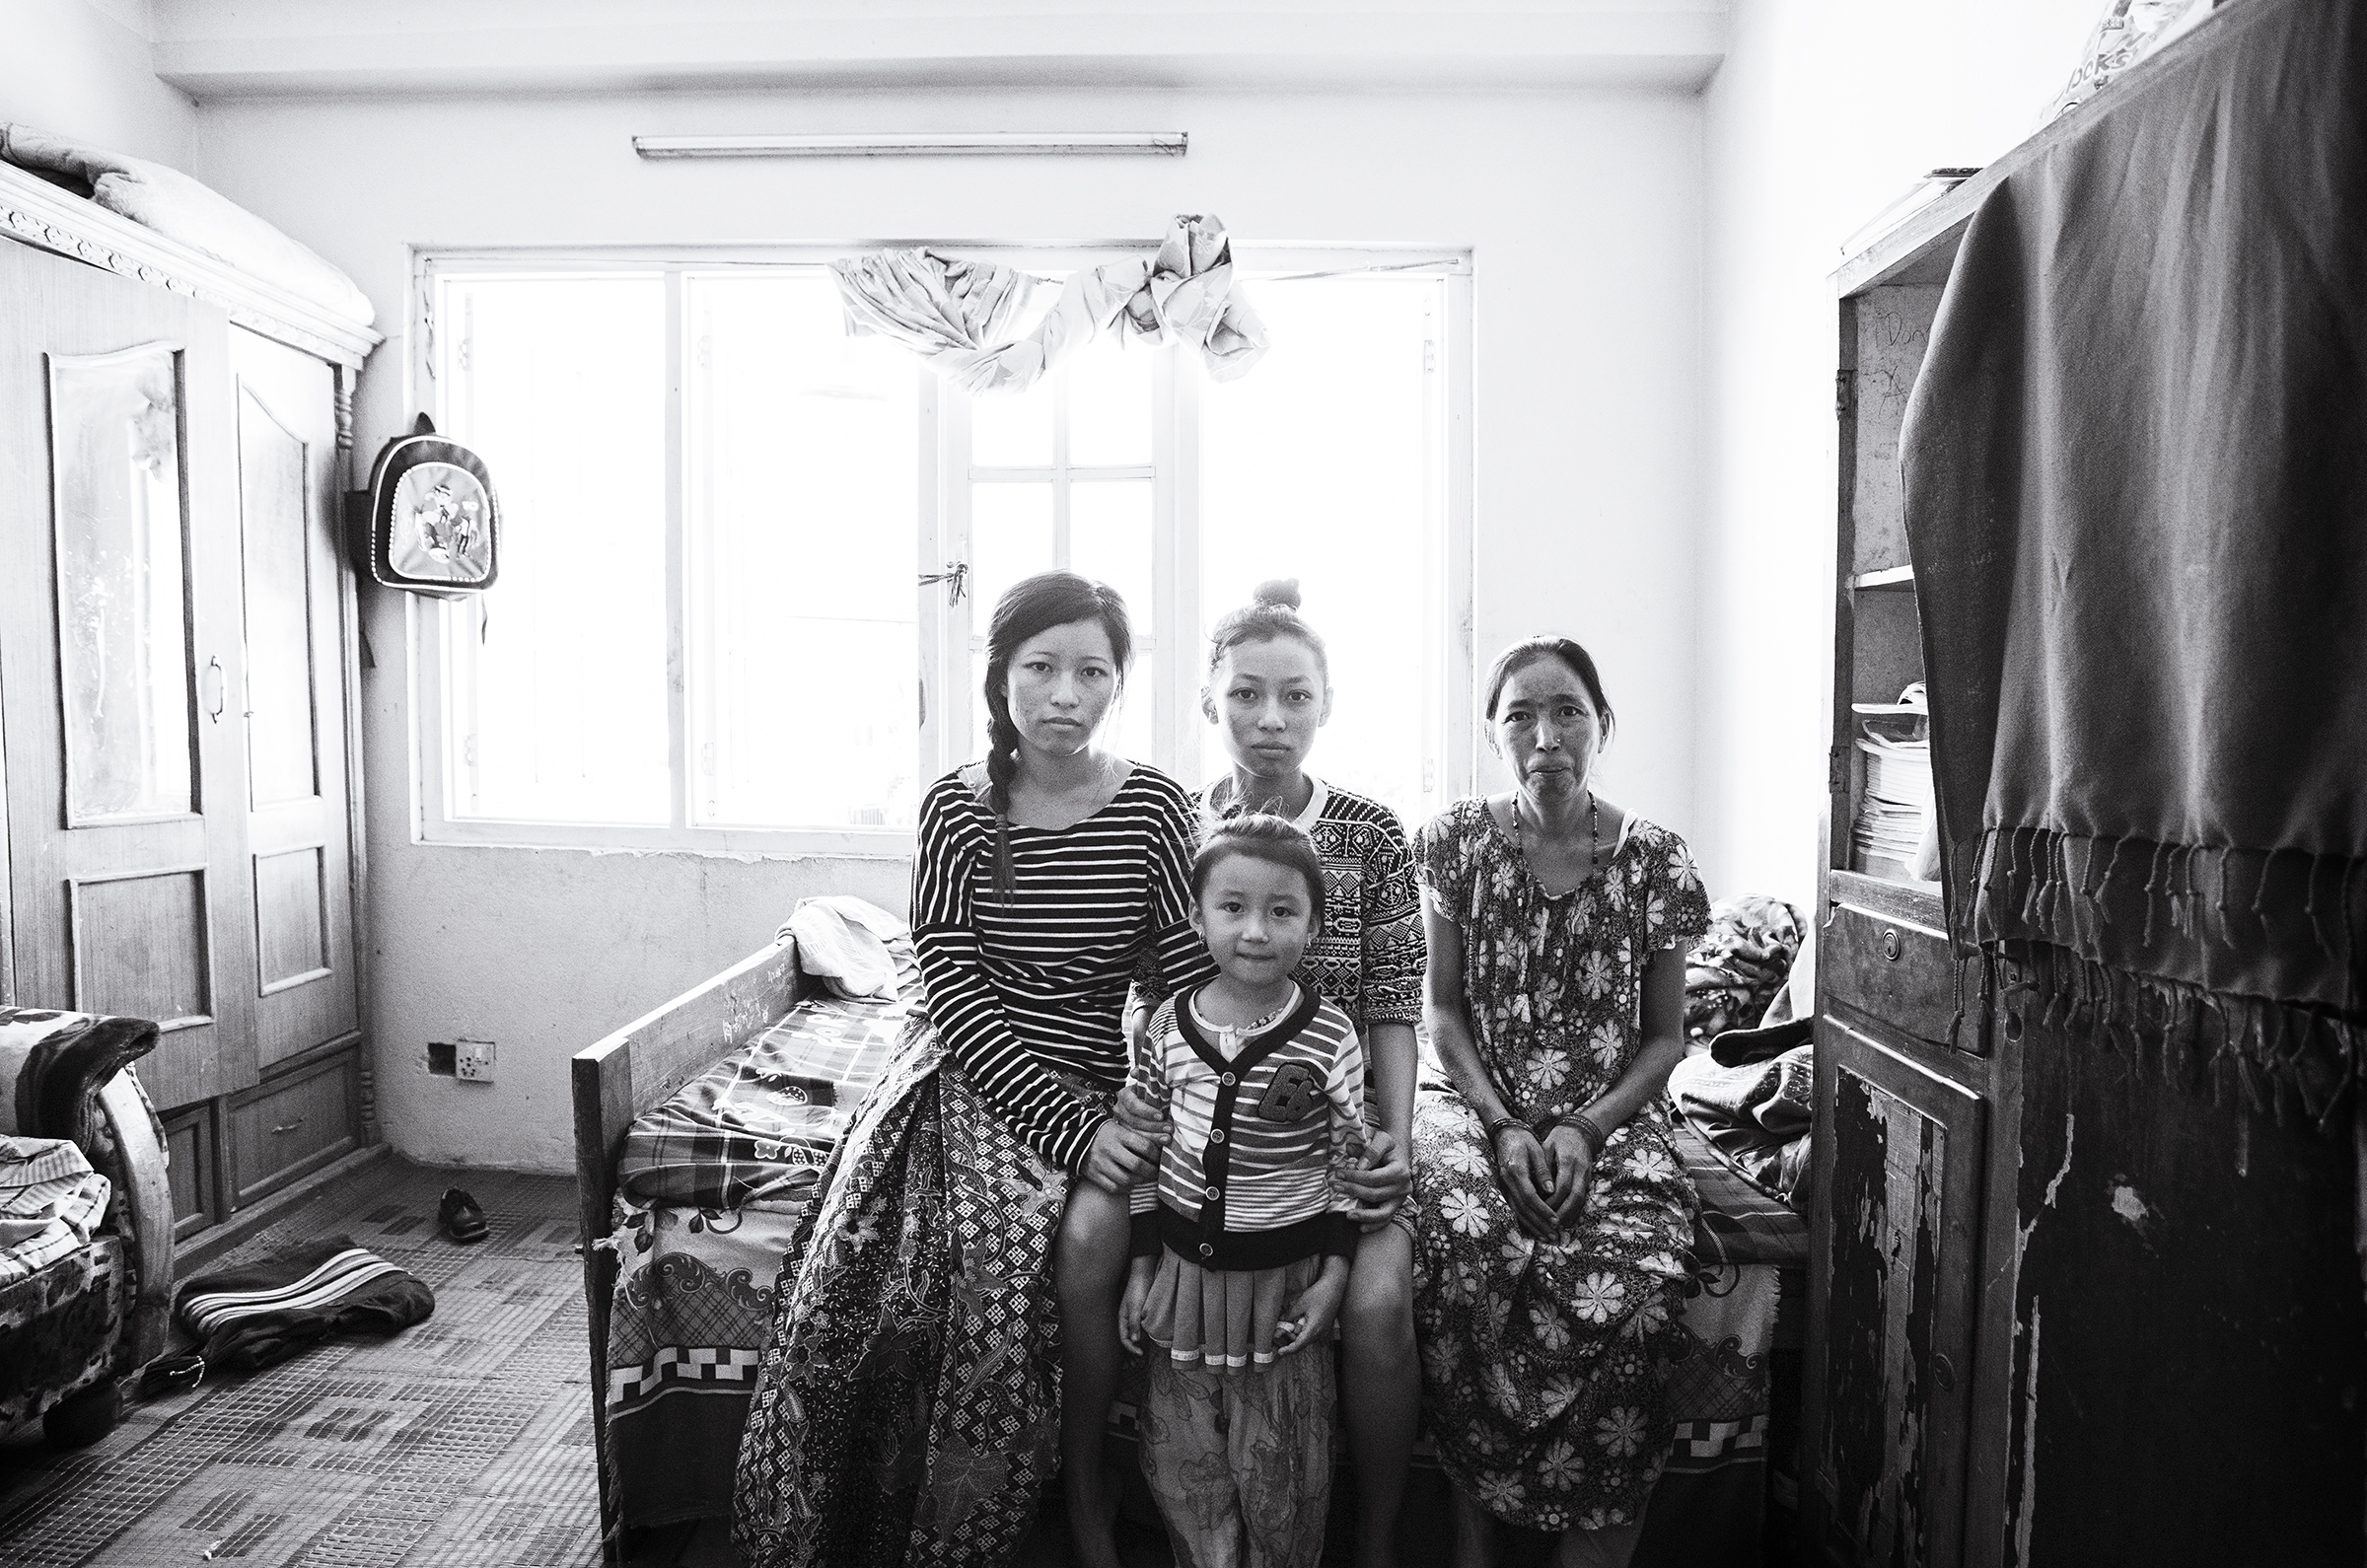 Left to right: Anu (21), Anjika (5), Anita (14), Phoolmaya (40s).